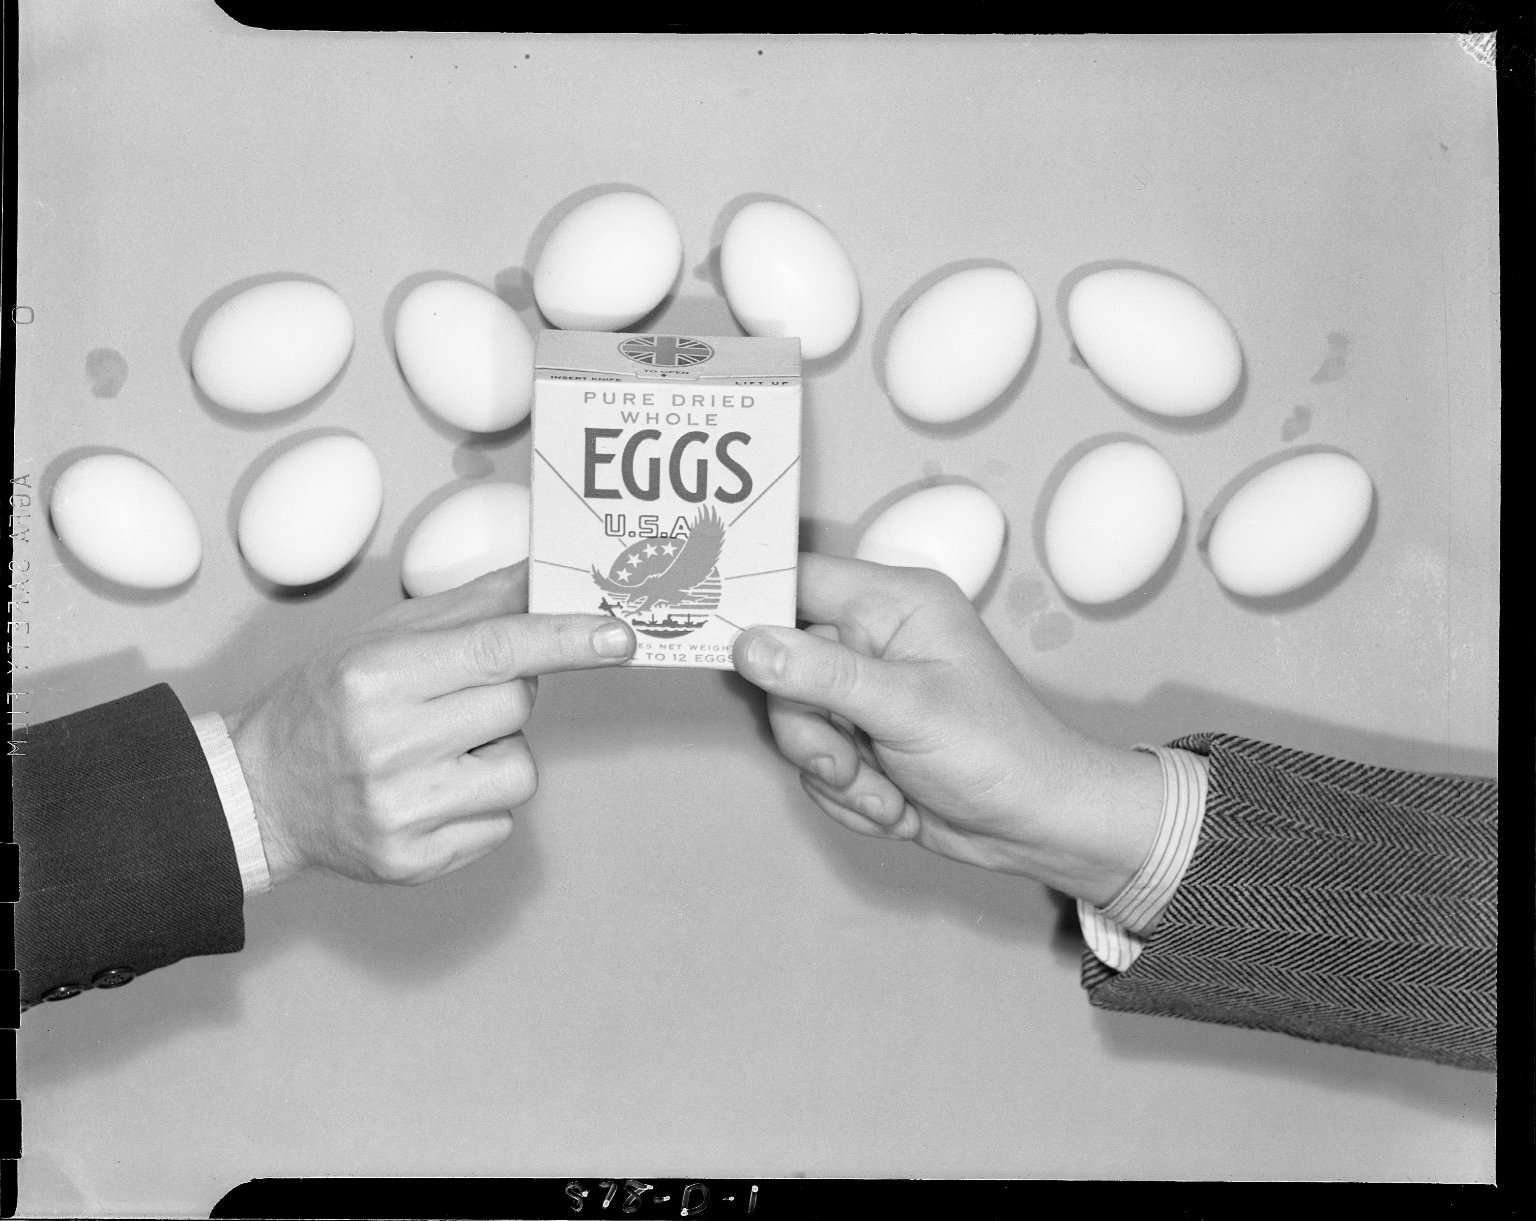 """Sutherland Paper Company, """"Pure Dried Whole Eggs U.S.A."""" advertisement"""